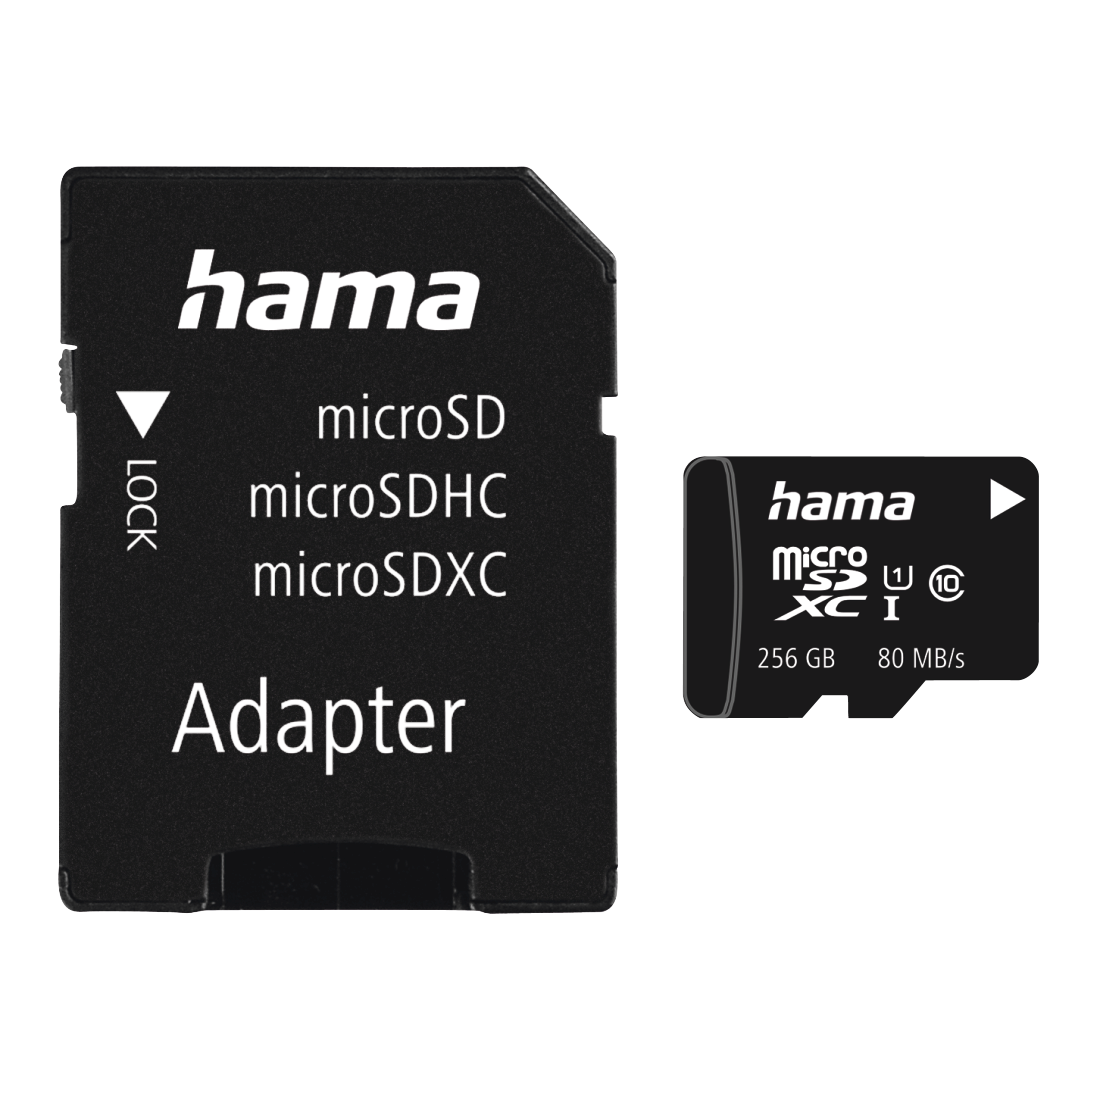 abx Druckfähige Abbildung - Hama, microSDXC 256GB Class 10 UHS-I 80MB/s + Adapter/Mobile